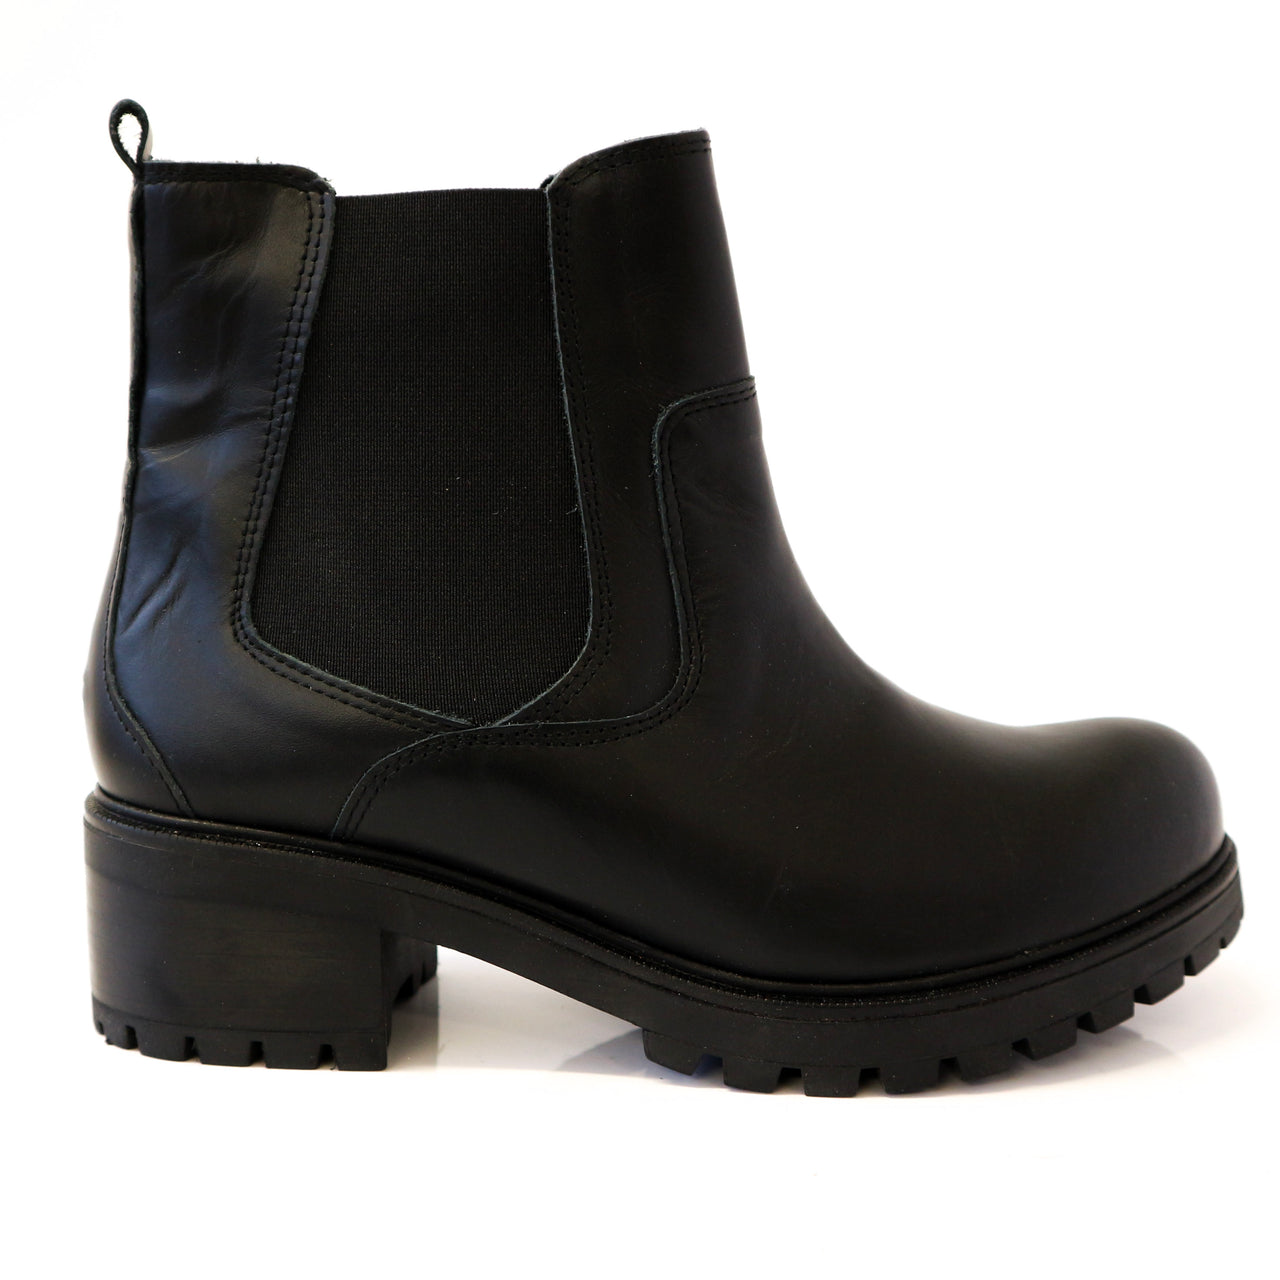 CAMILLA | Black Short Boot - TrystShoes